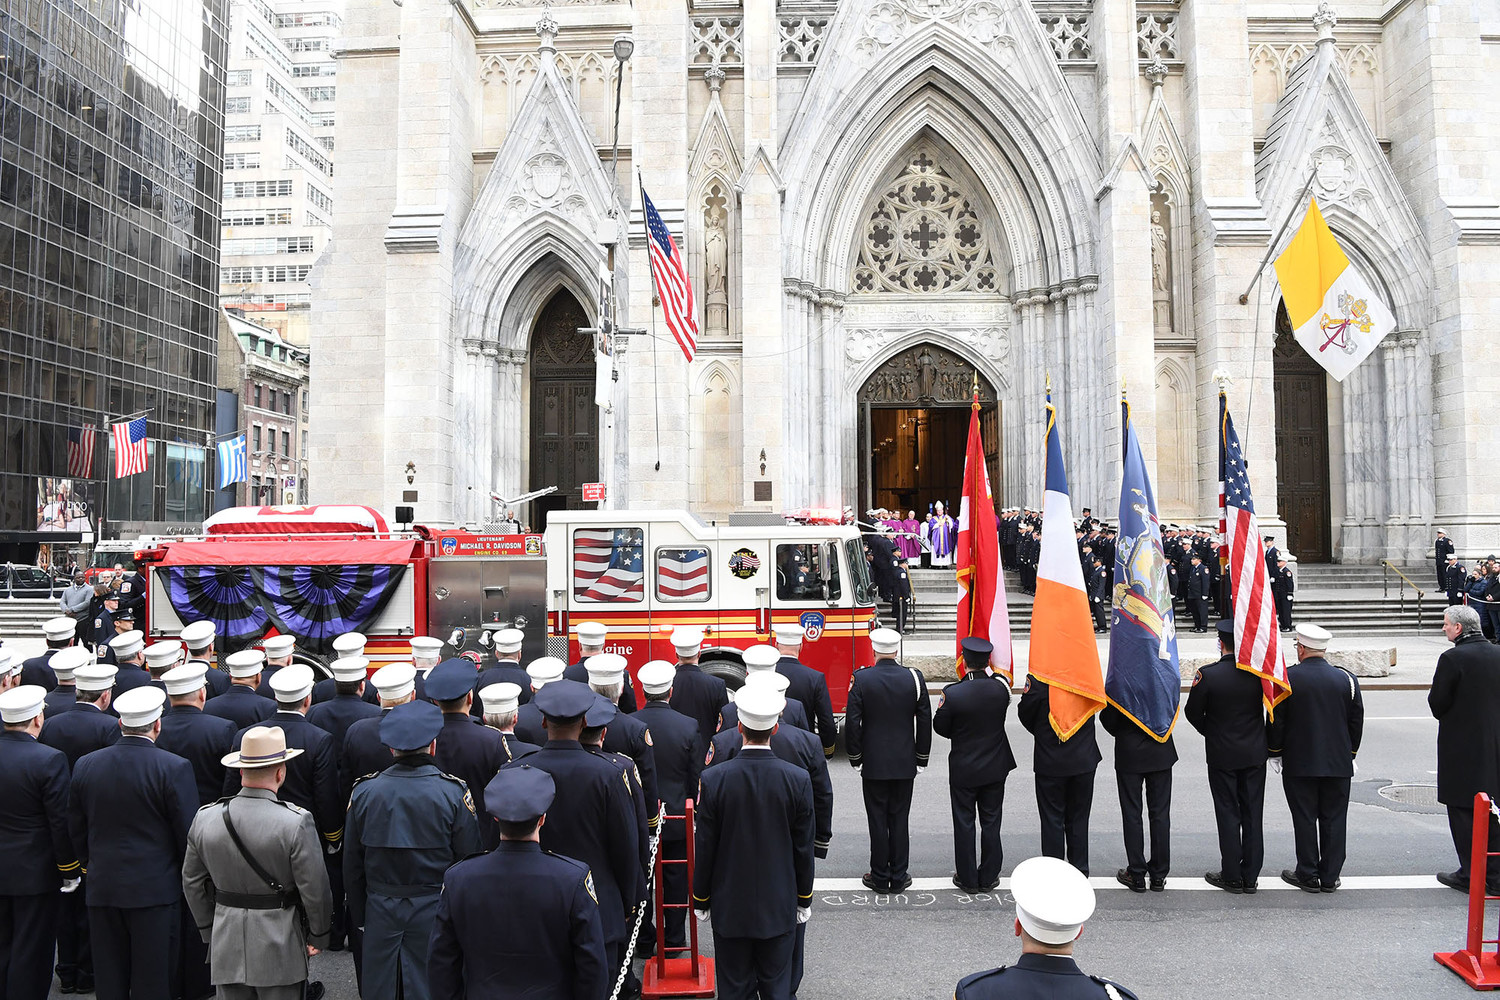 A fire truck from Engine 69 in Harlem arrives at St. Patrick's Cathedral with the casket of Lieutenant Michael R. Davidson before the start of the Funeral Mass celebrated by Cardinal Dolan March 27. Lt. Davidson died battling a fire in Harlem with firefighters from Engine 69 March 23.